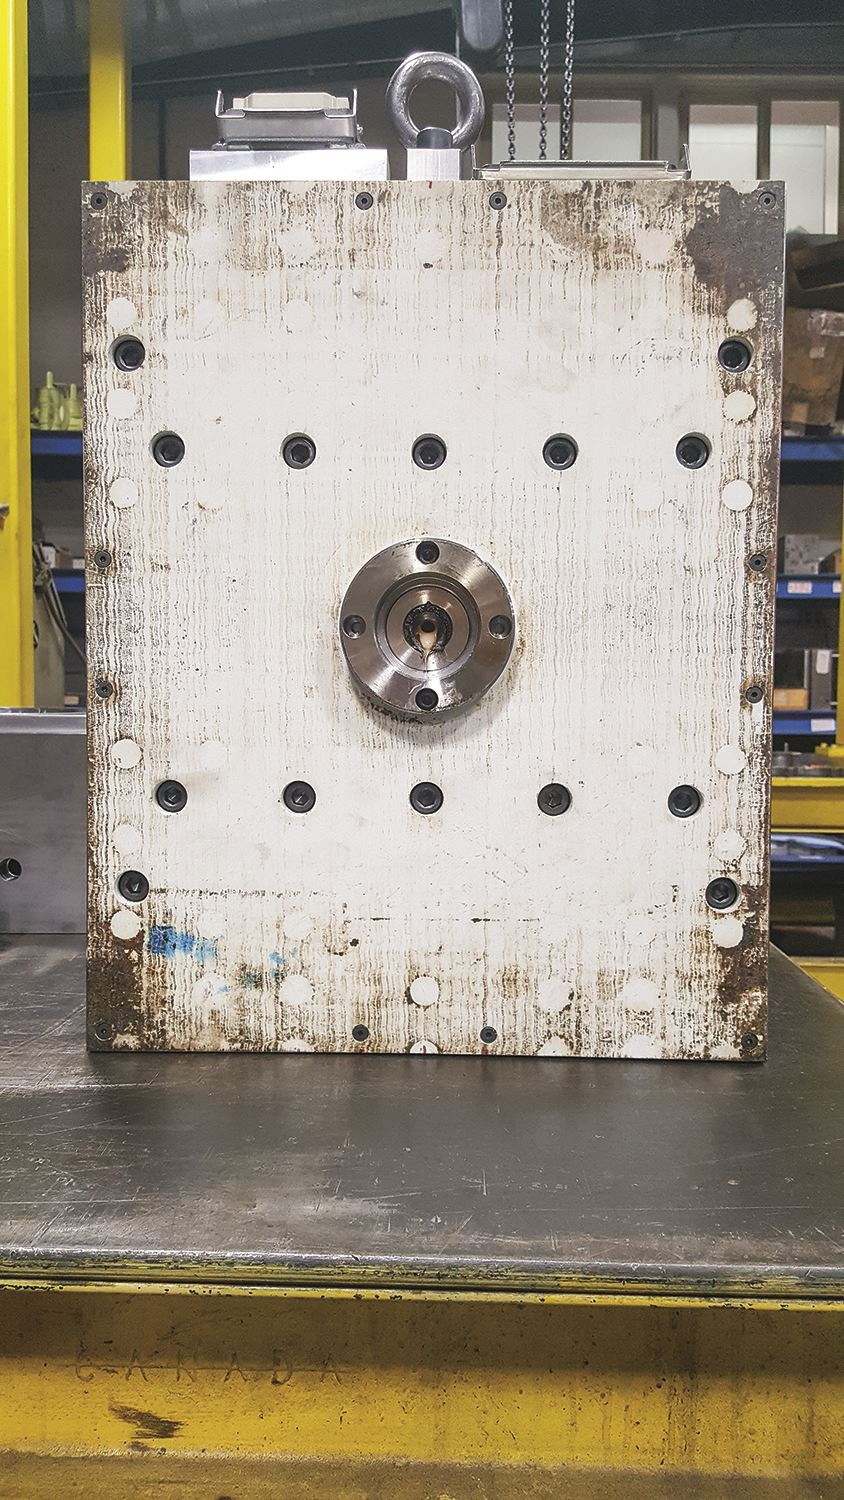 Injection mold insulator plate